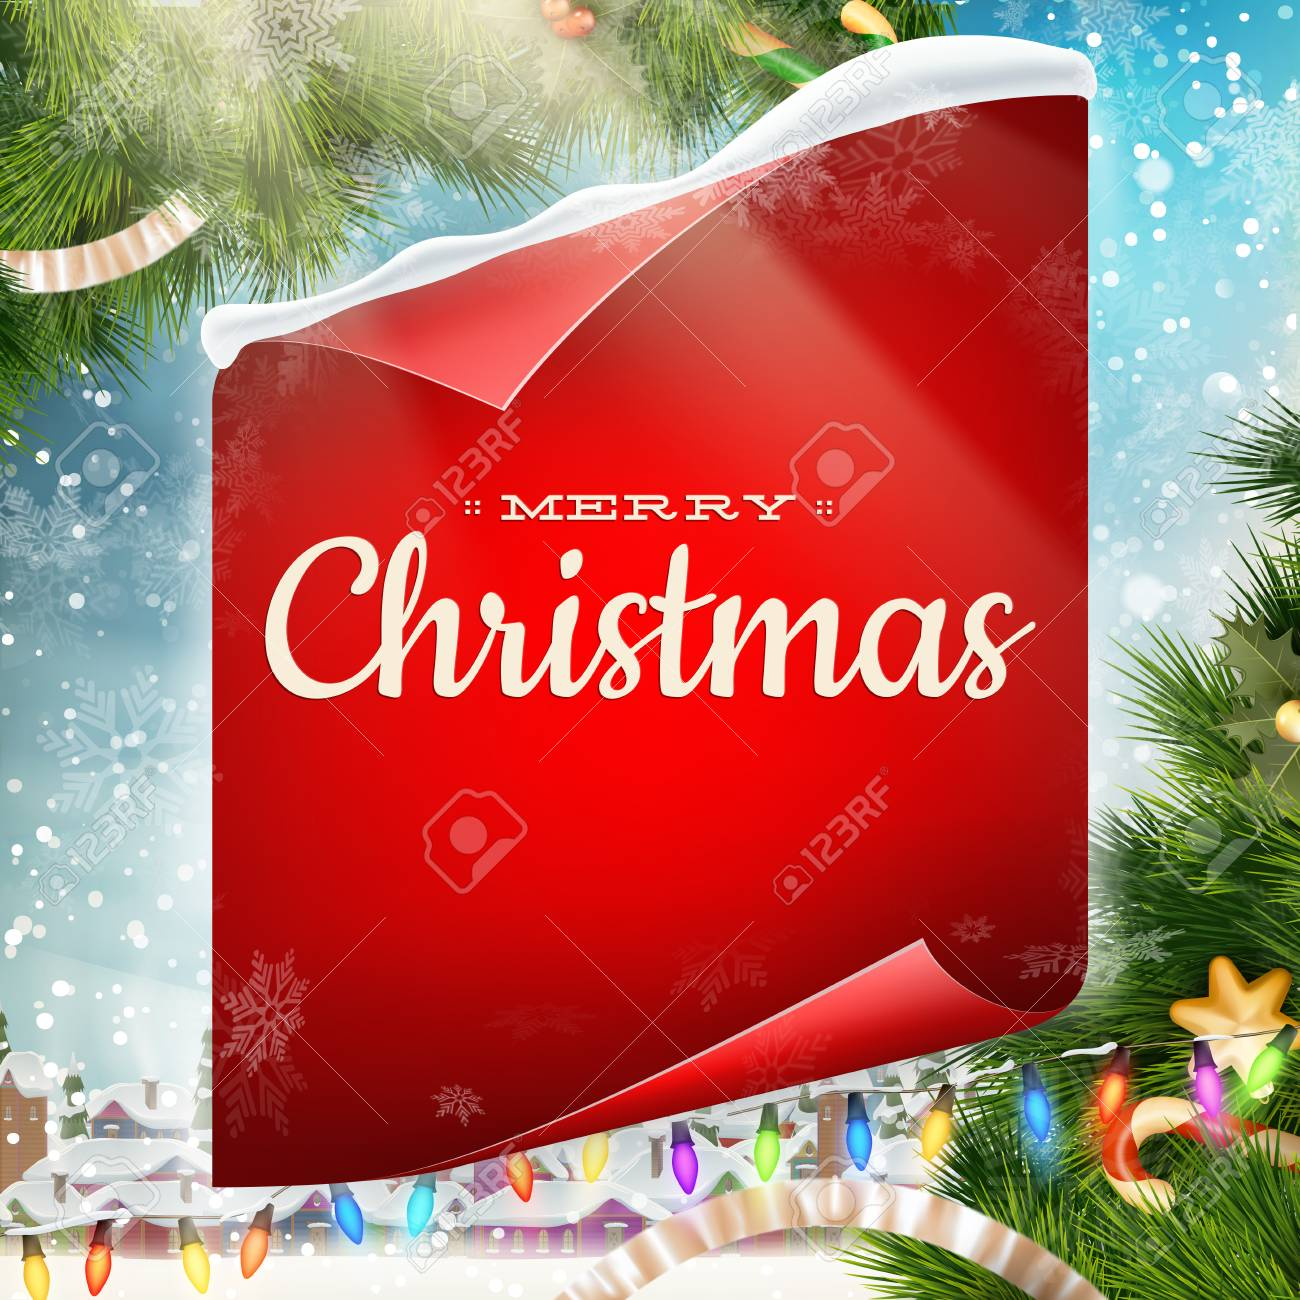 Merry christmas greeting card template with red scroll paper merry christmas greeting card template with red scroll paper eps 10 vector file included stock m4hsunfo